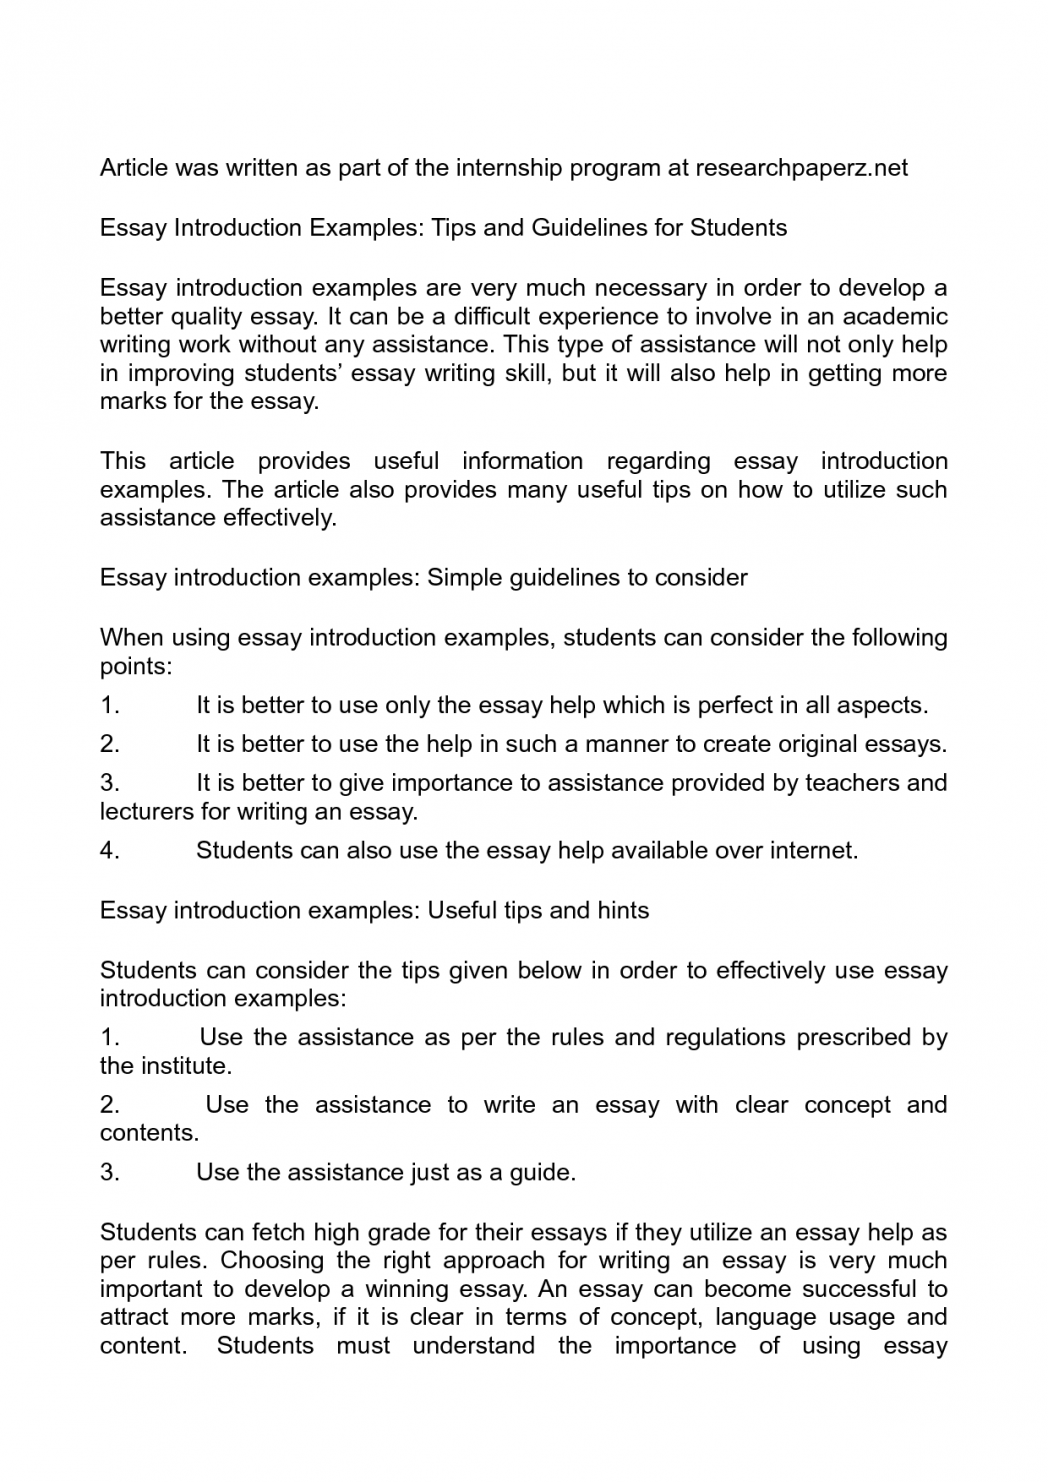 007 Essay Example How To Start Introduction On Good Paragraph An Eyx5t Write University For In Ielts Academic Analytical Argumentative Hook Examples Great Intro 1048x1482 Awesome A Paper College Biography About Yourself Full